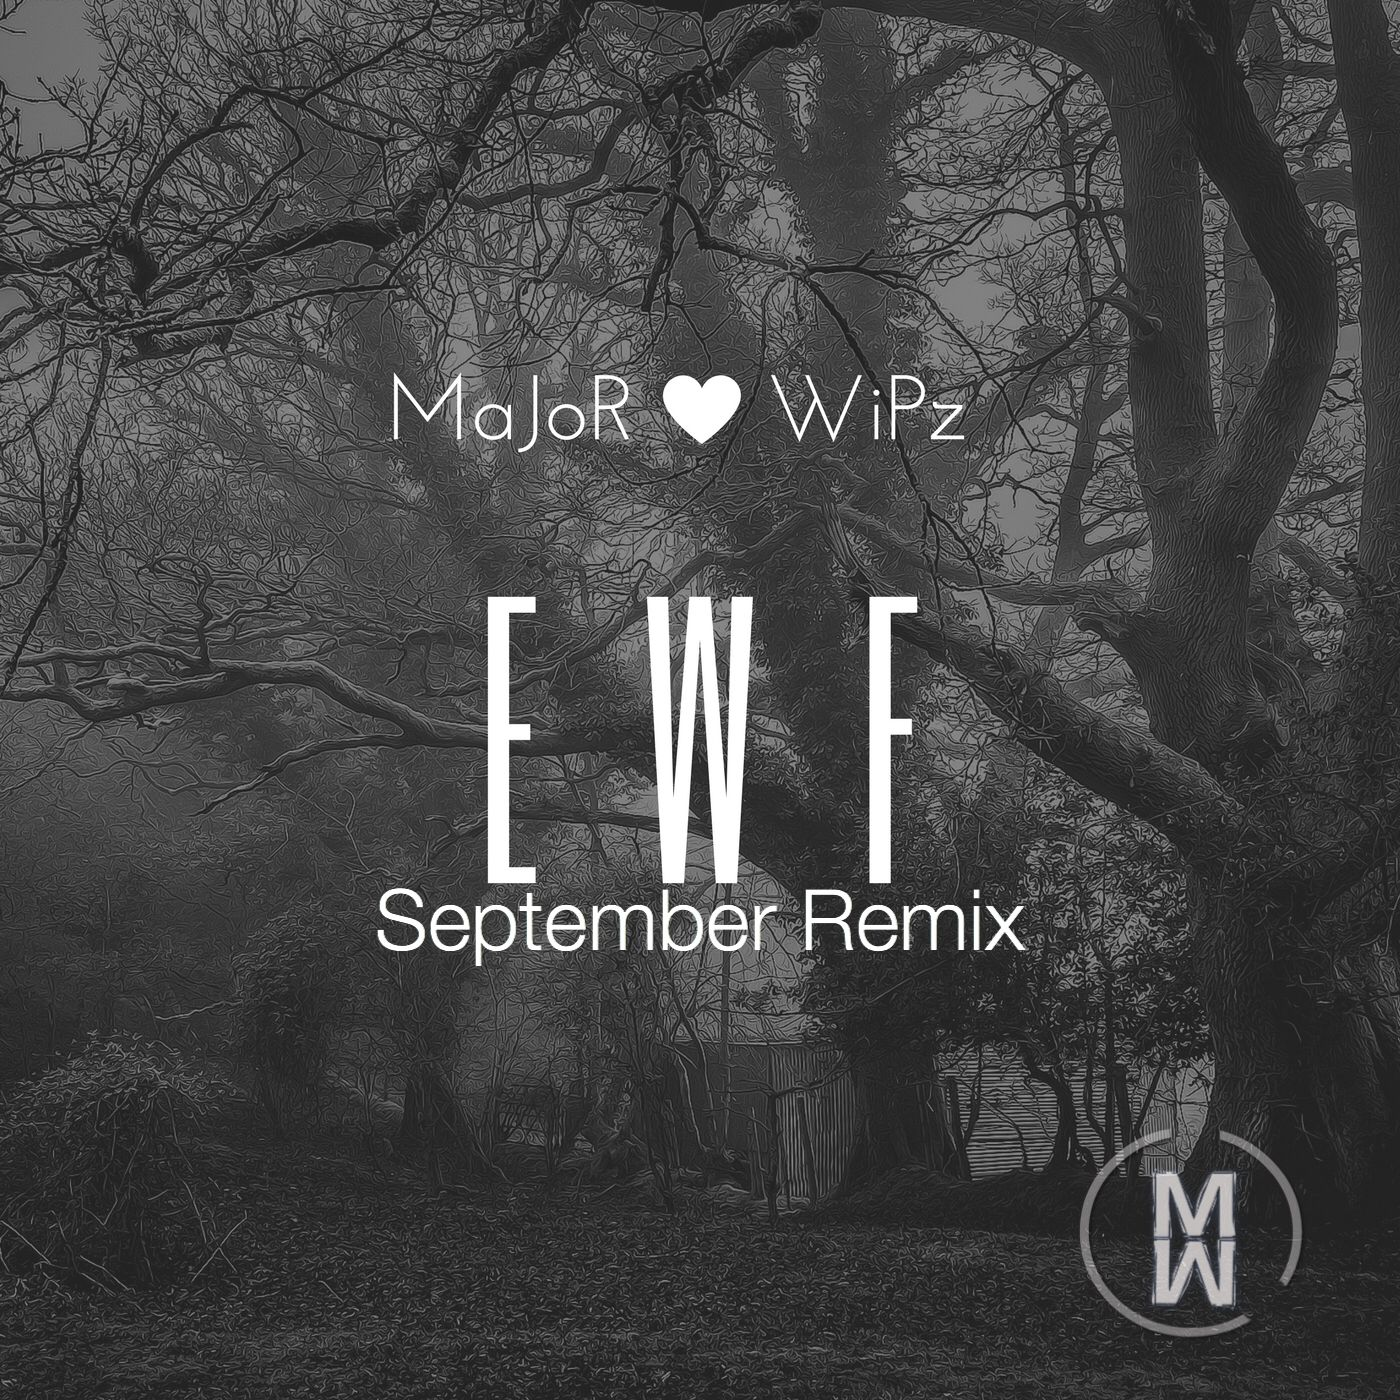 September Remix by MaJoR WiPz from MaJoR WiPz: Listen for free